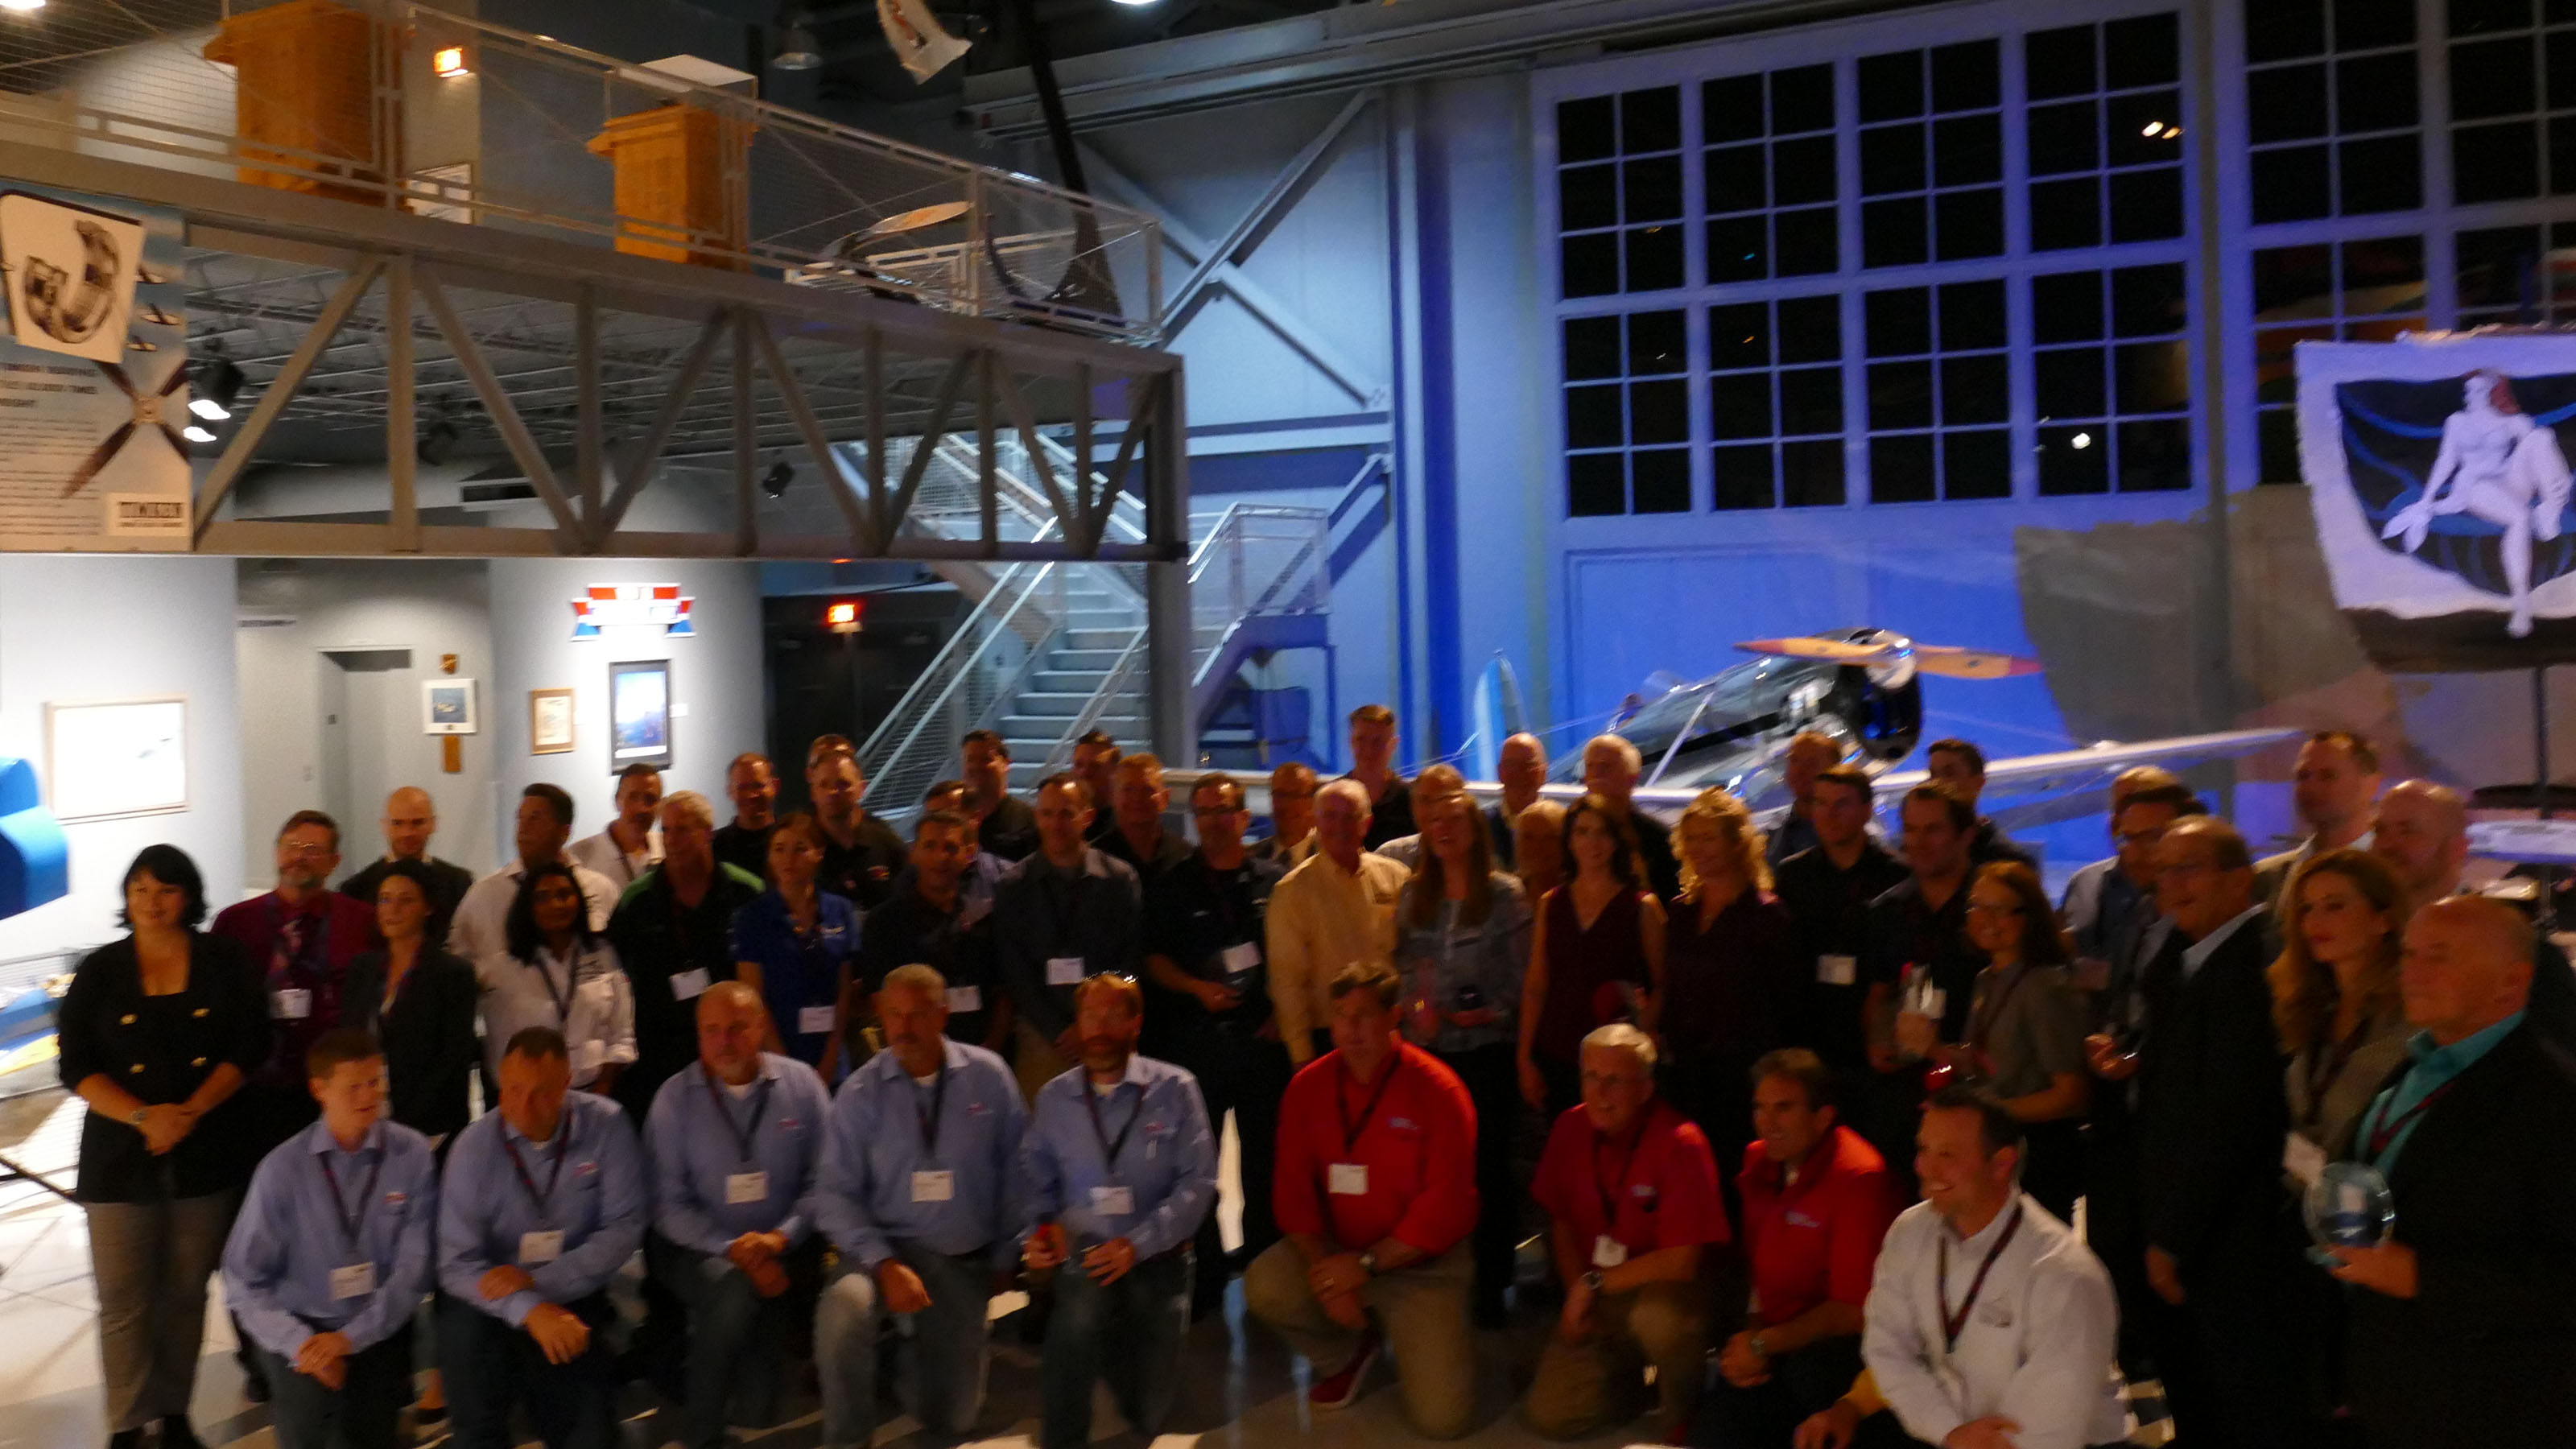 This year's Flight Training Experience Awards were held at EAA's museum in Oshkosh. AOPA announced winners of the best flight school and instructor, as well as regional winners, and distinguished schools and instructors.